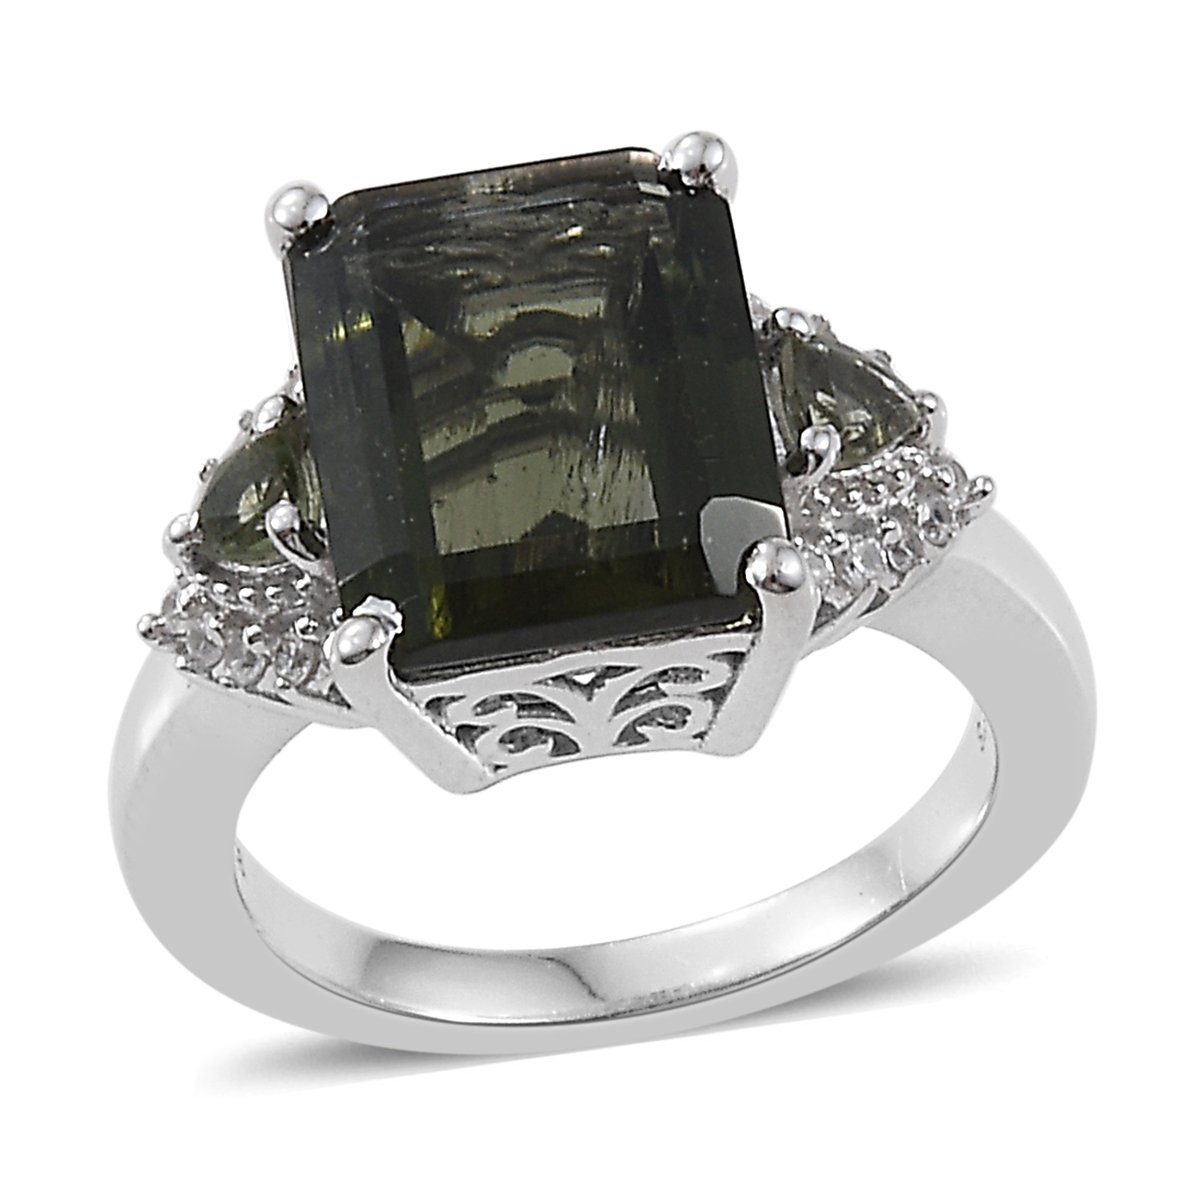 Natural Bohemian Moldavite, Cambodian Zircon Ring in Platinum Over Sterling Silver (Size 8.0) 3.80 ctw